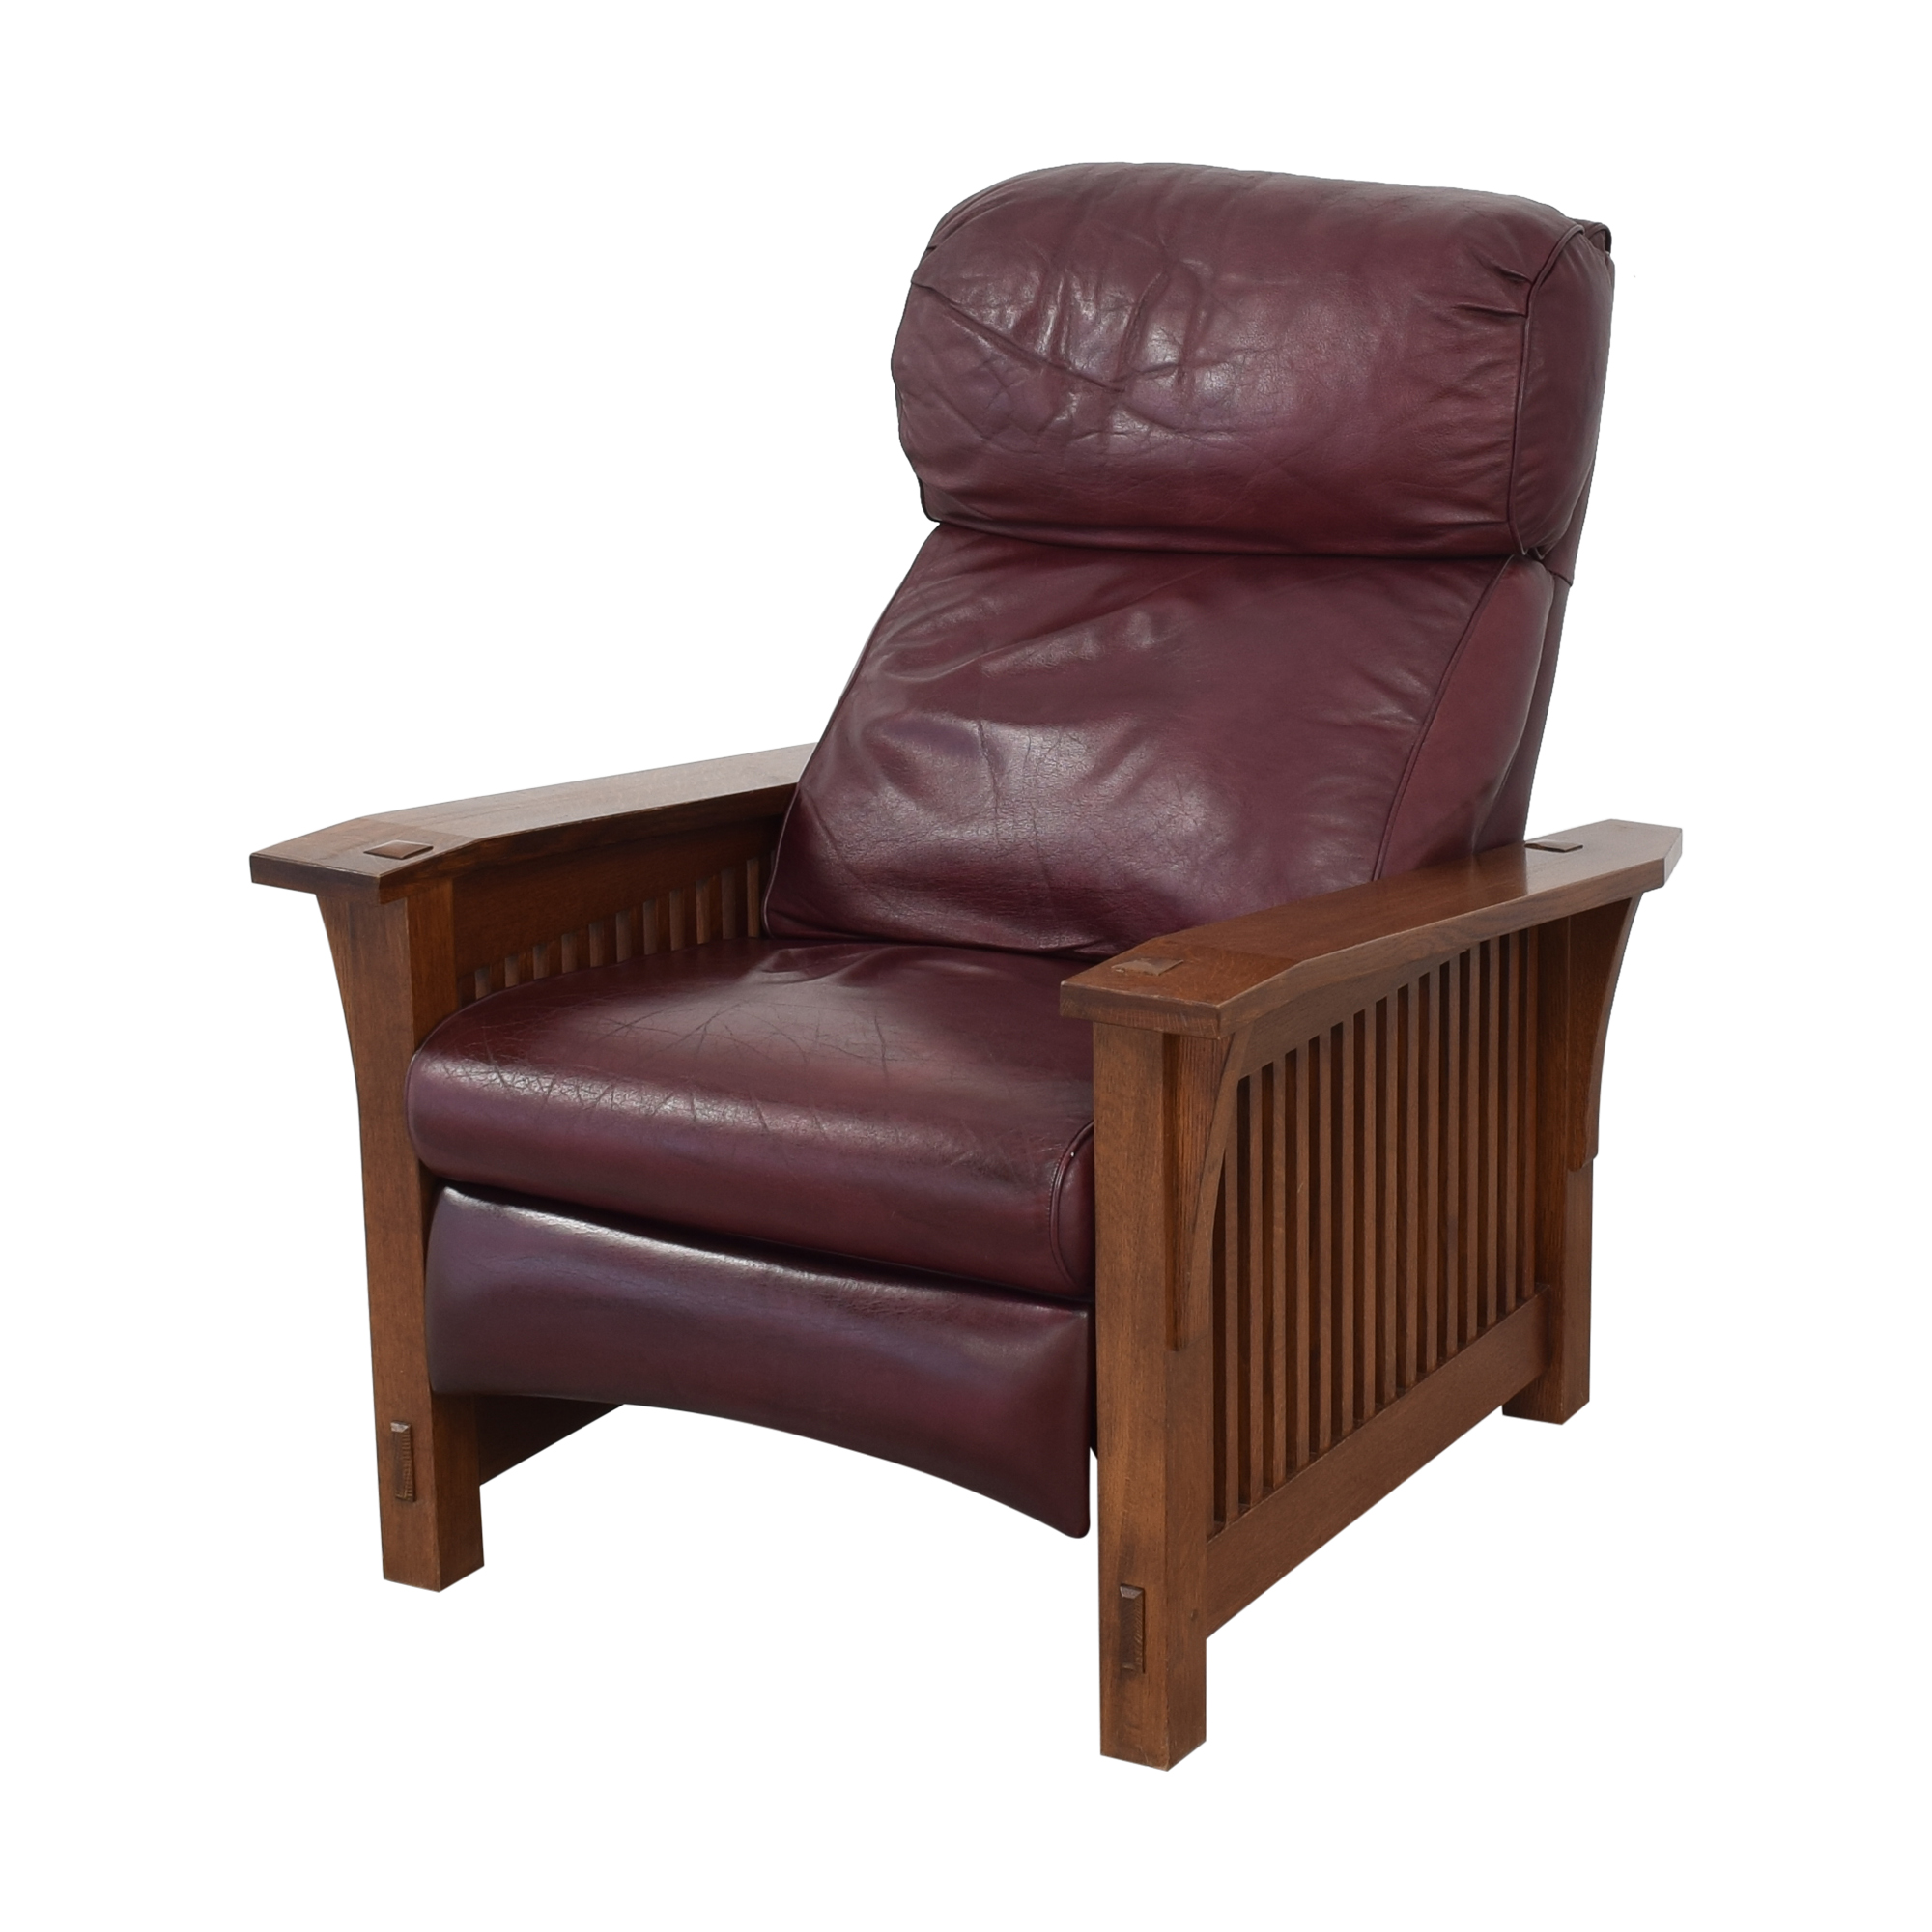 buy Stickley Spindle Morris Recliner Stickley Furniture Chairs